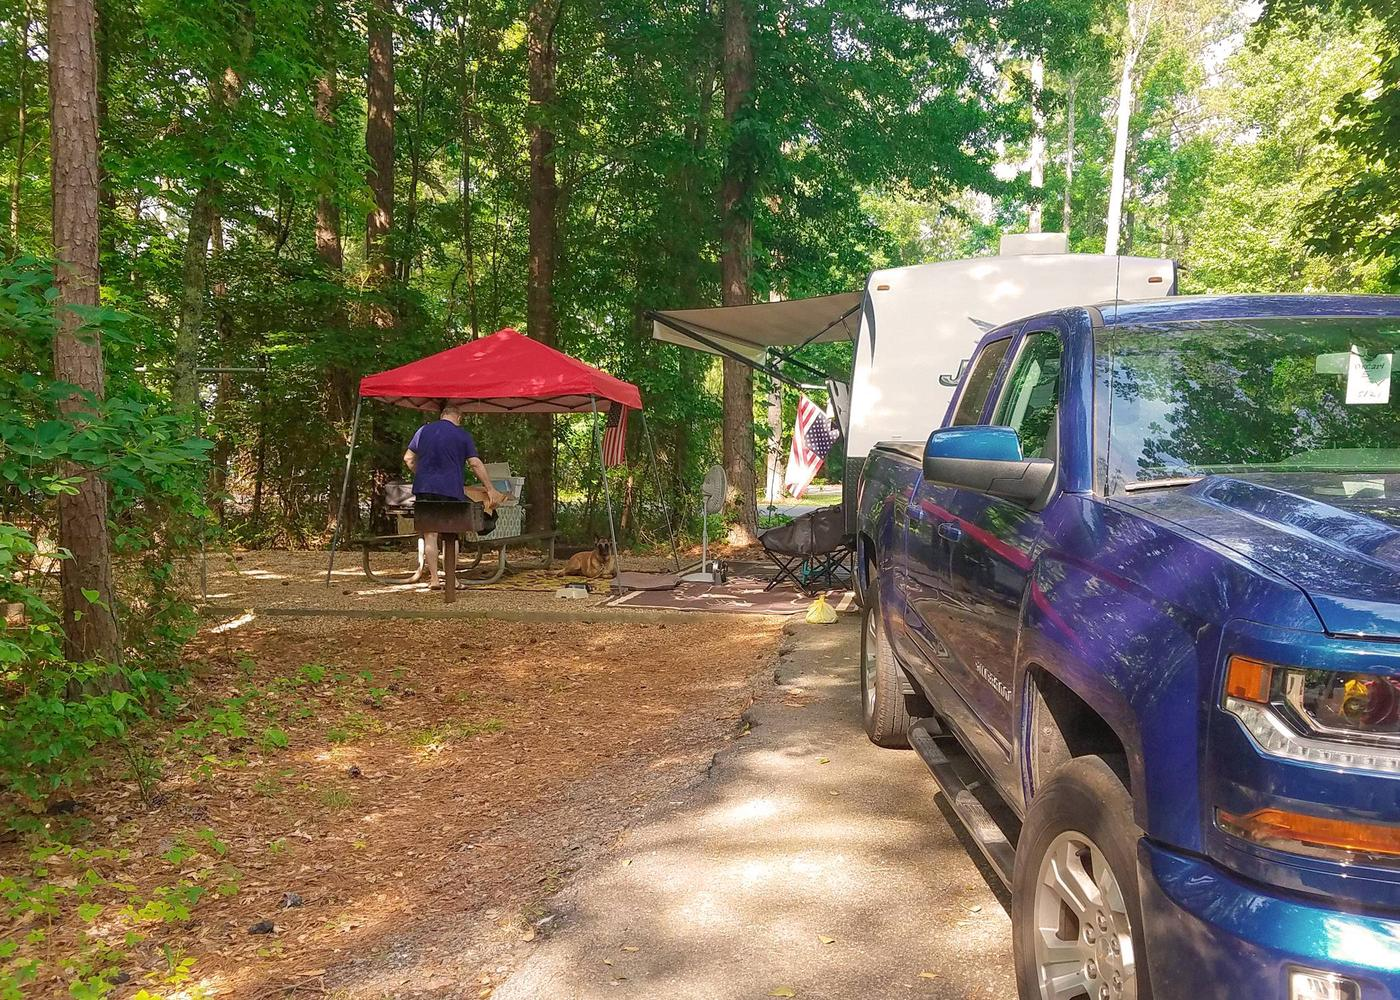 Awning-side clearance, campsite view 2.Victoria Campground, campsite 05.